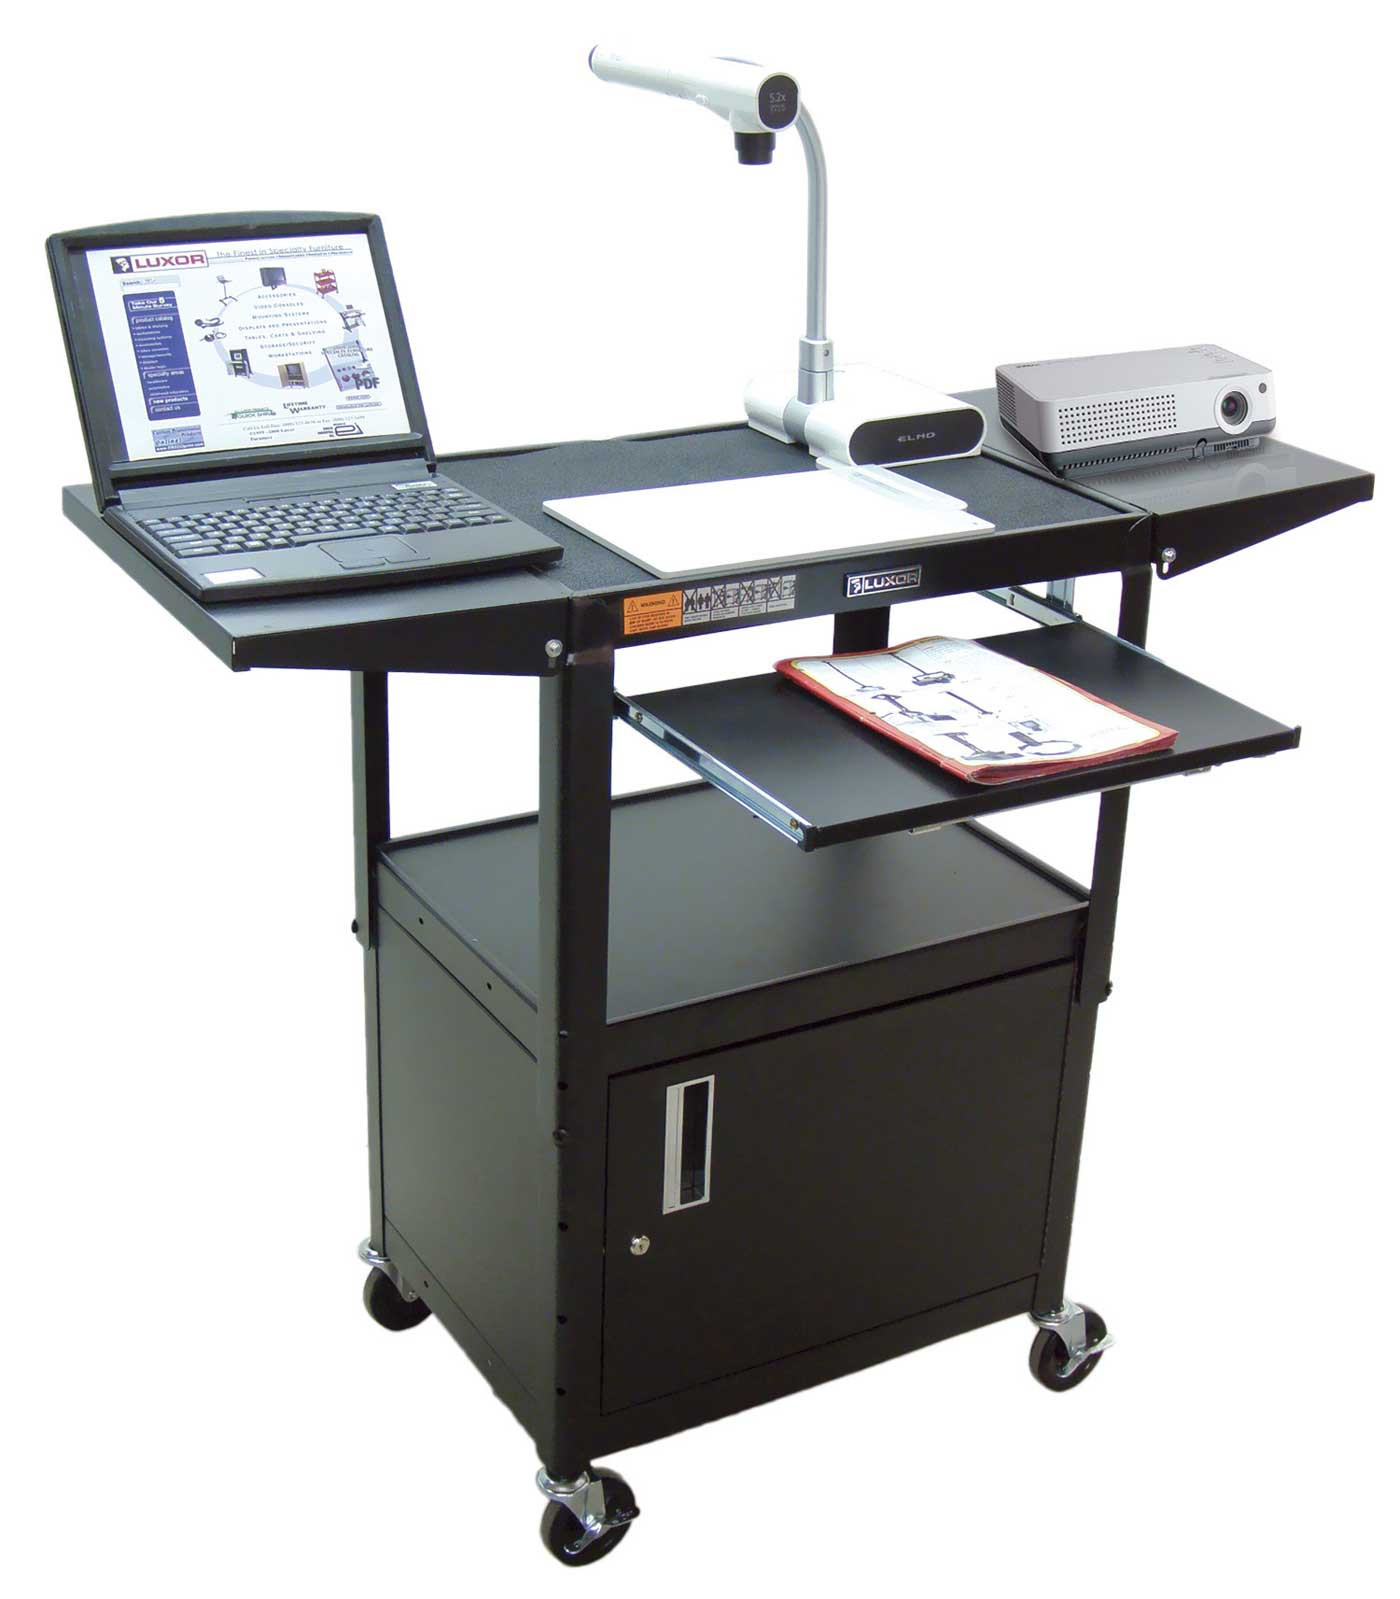 Luxor compact black mobile computer workstation